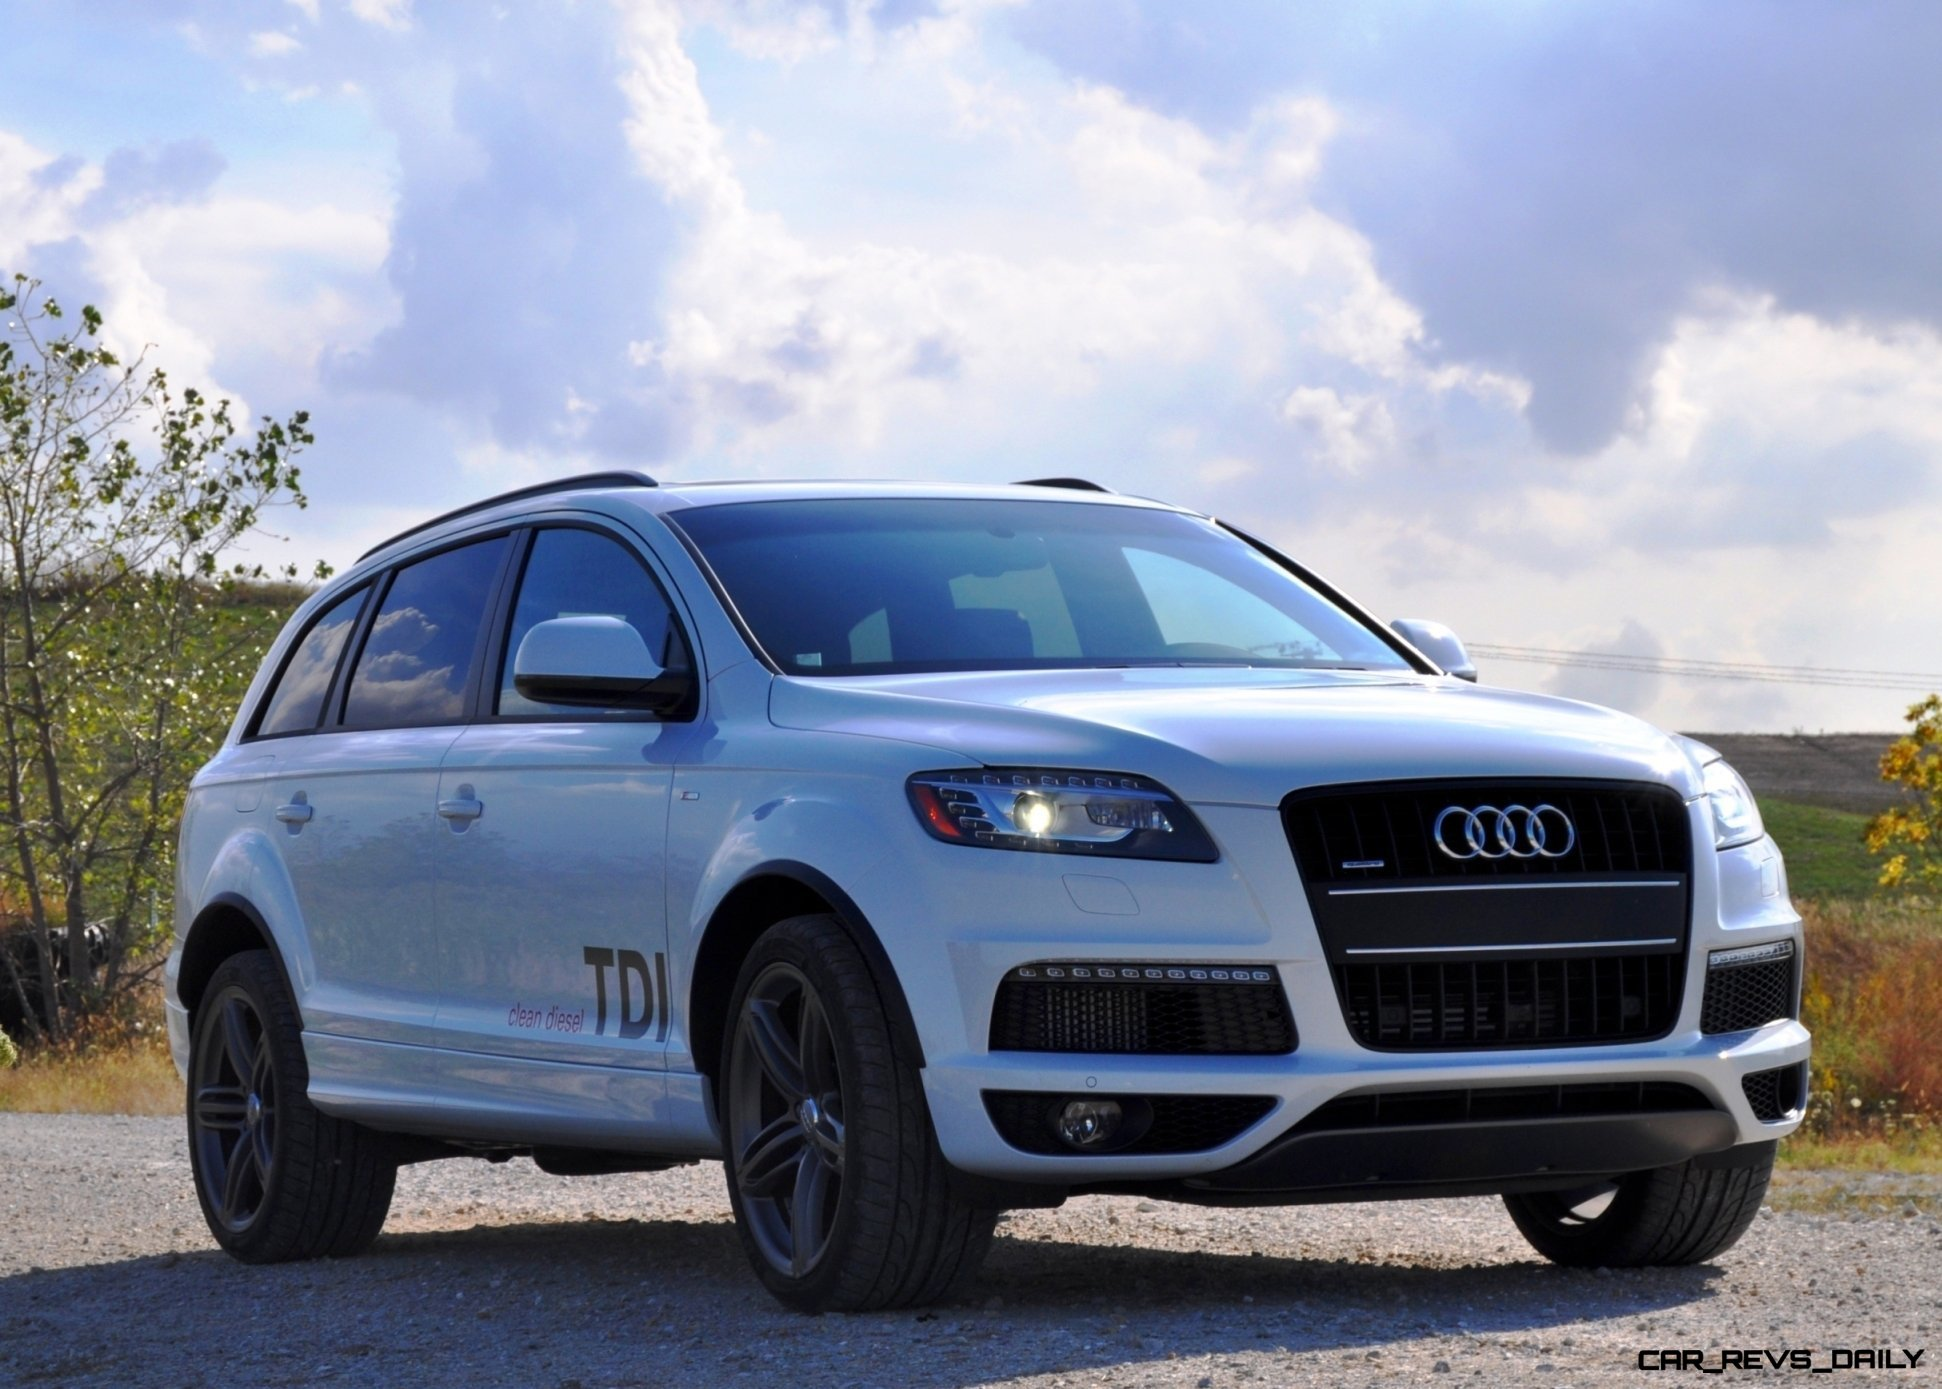 2014 audi q7 tdi s line plus buyers guide with galleries specs and pricing. Black Bedroom Furniture Sets. Home Design Ideas